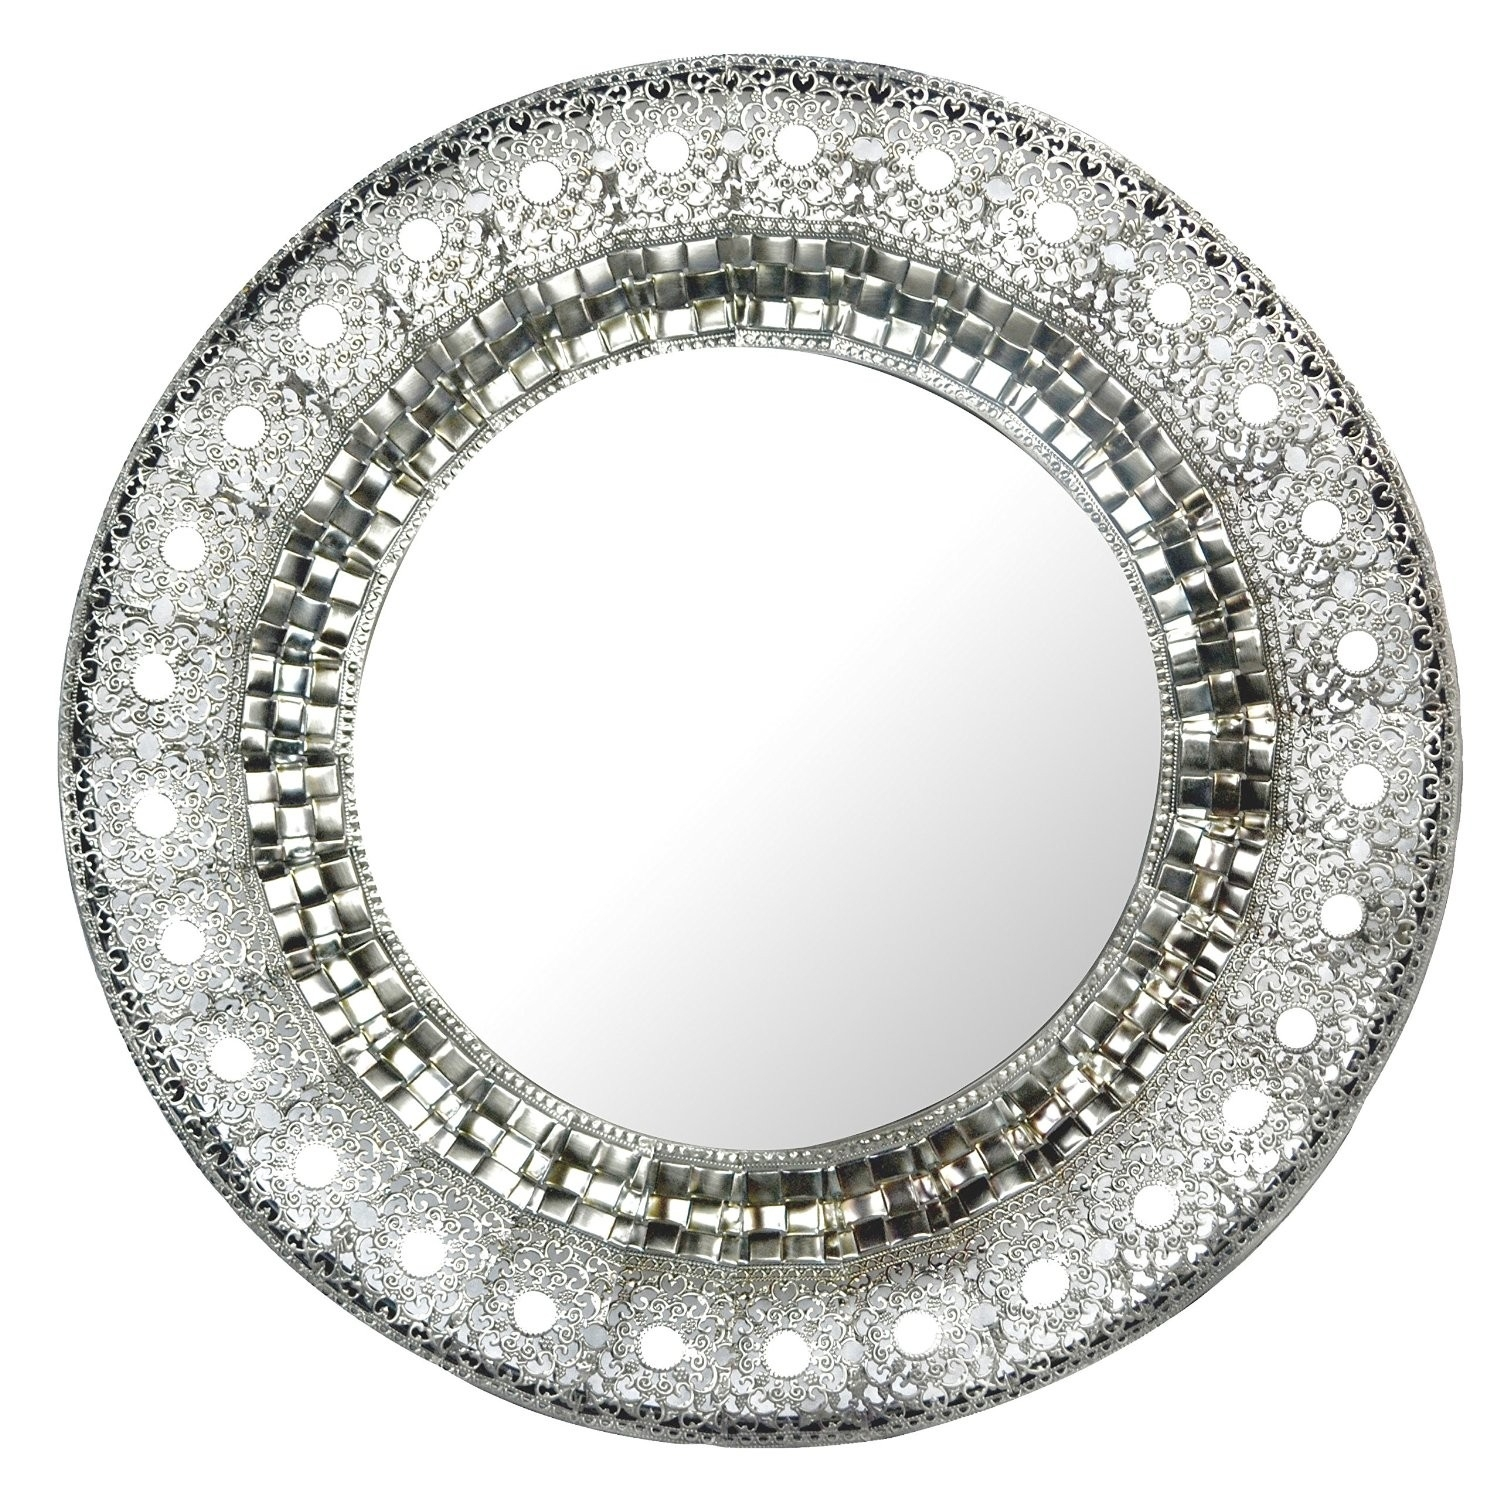 Amazing Silver Round Bathroom Mirrors 67 For With Silver Round With Regard To Silver Round Mirrors (Image 1 of 15)